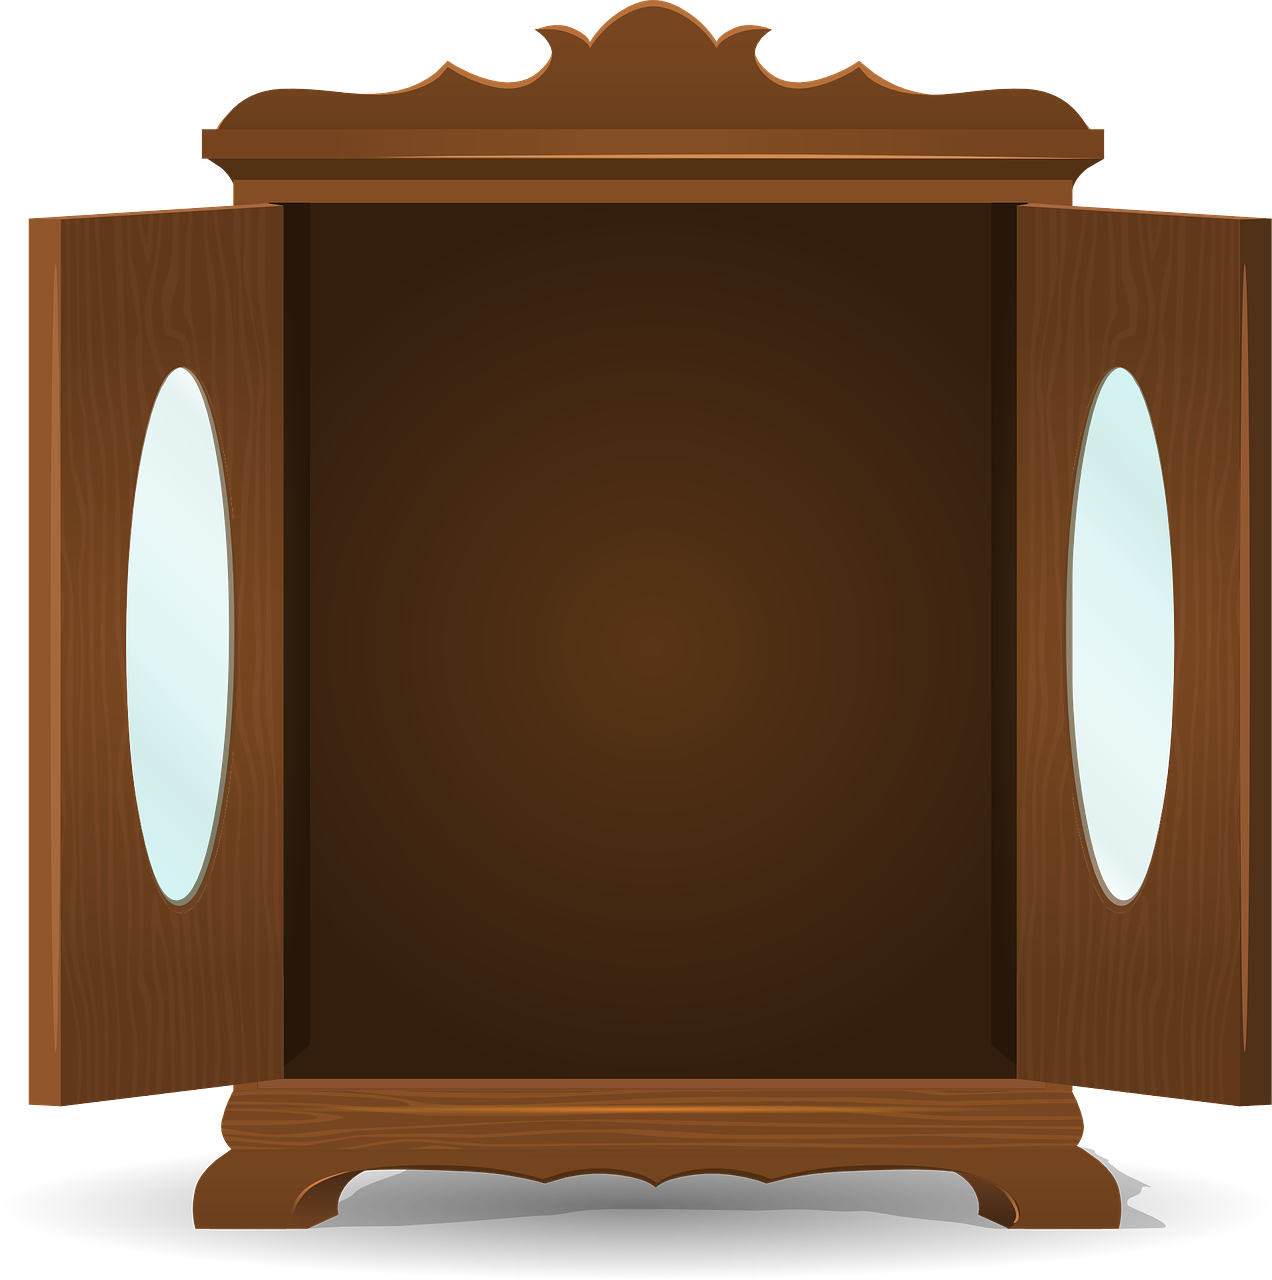 Free image on pixabay. Dresser clipart cubboard